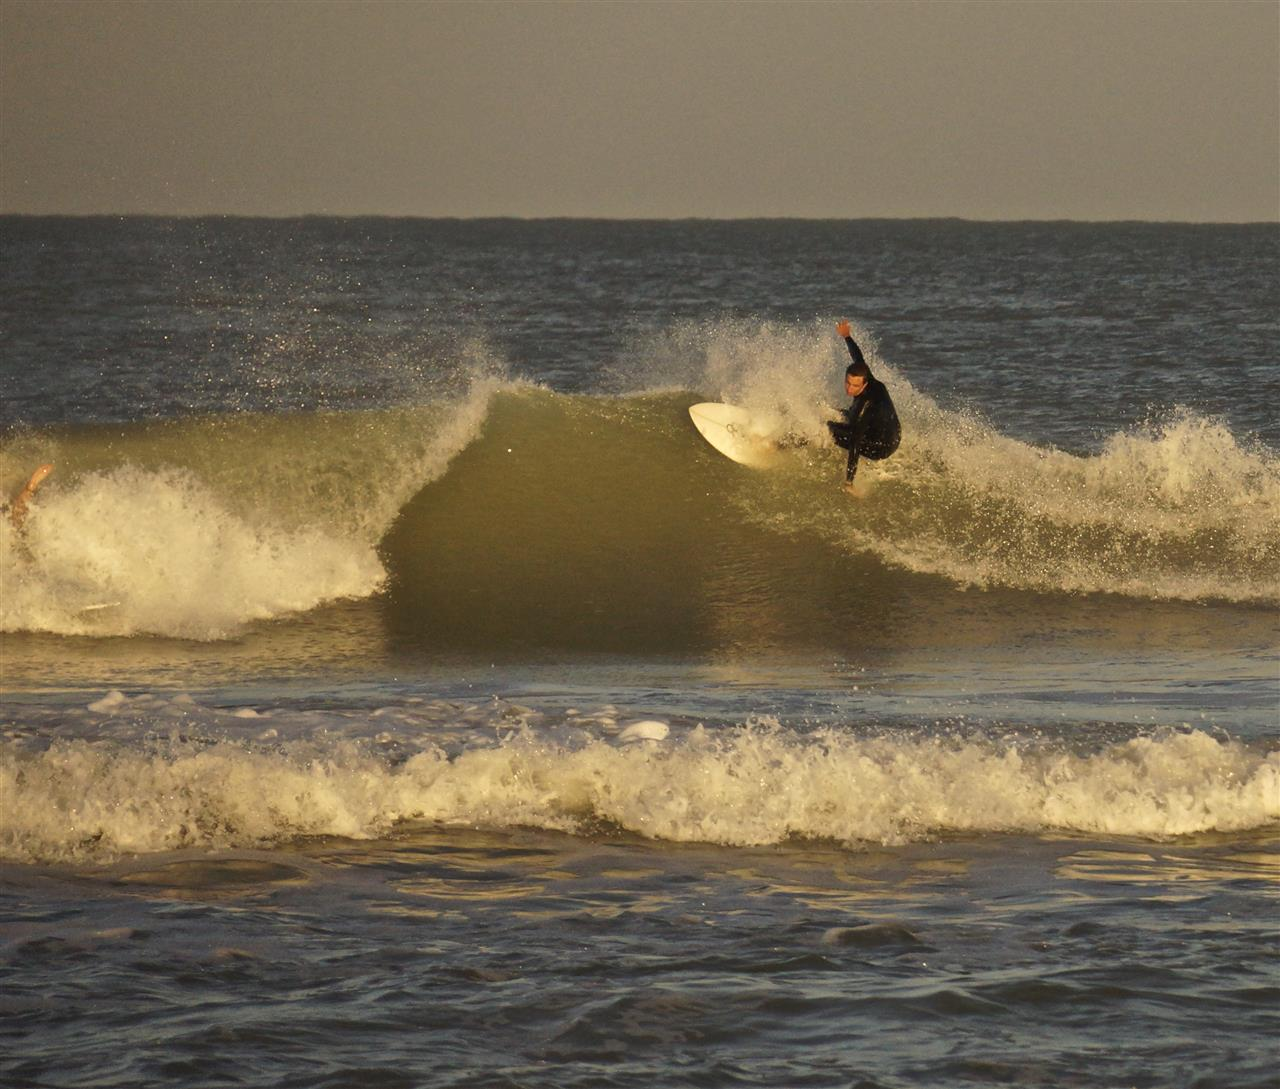 A local surfer taking full advantage of that Vero Beach golden hour before sunset...